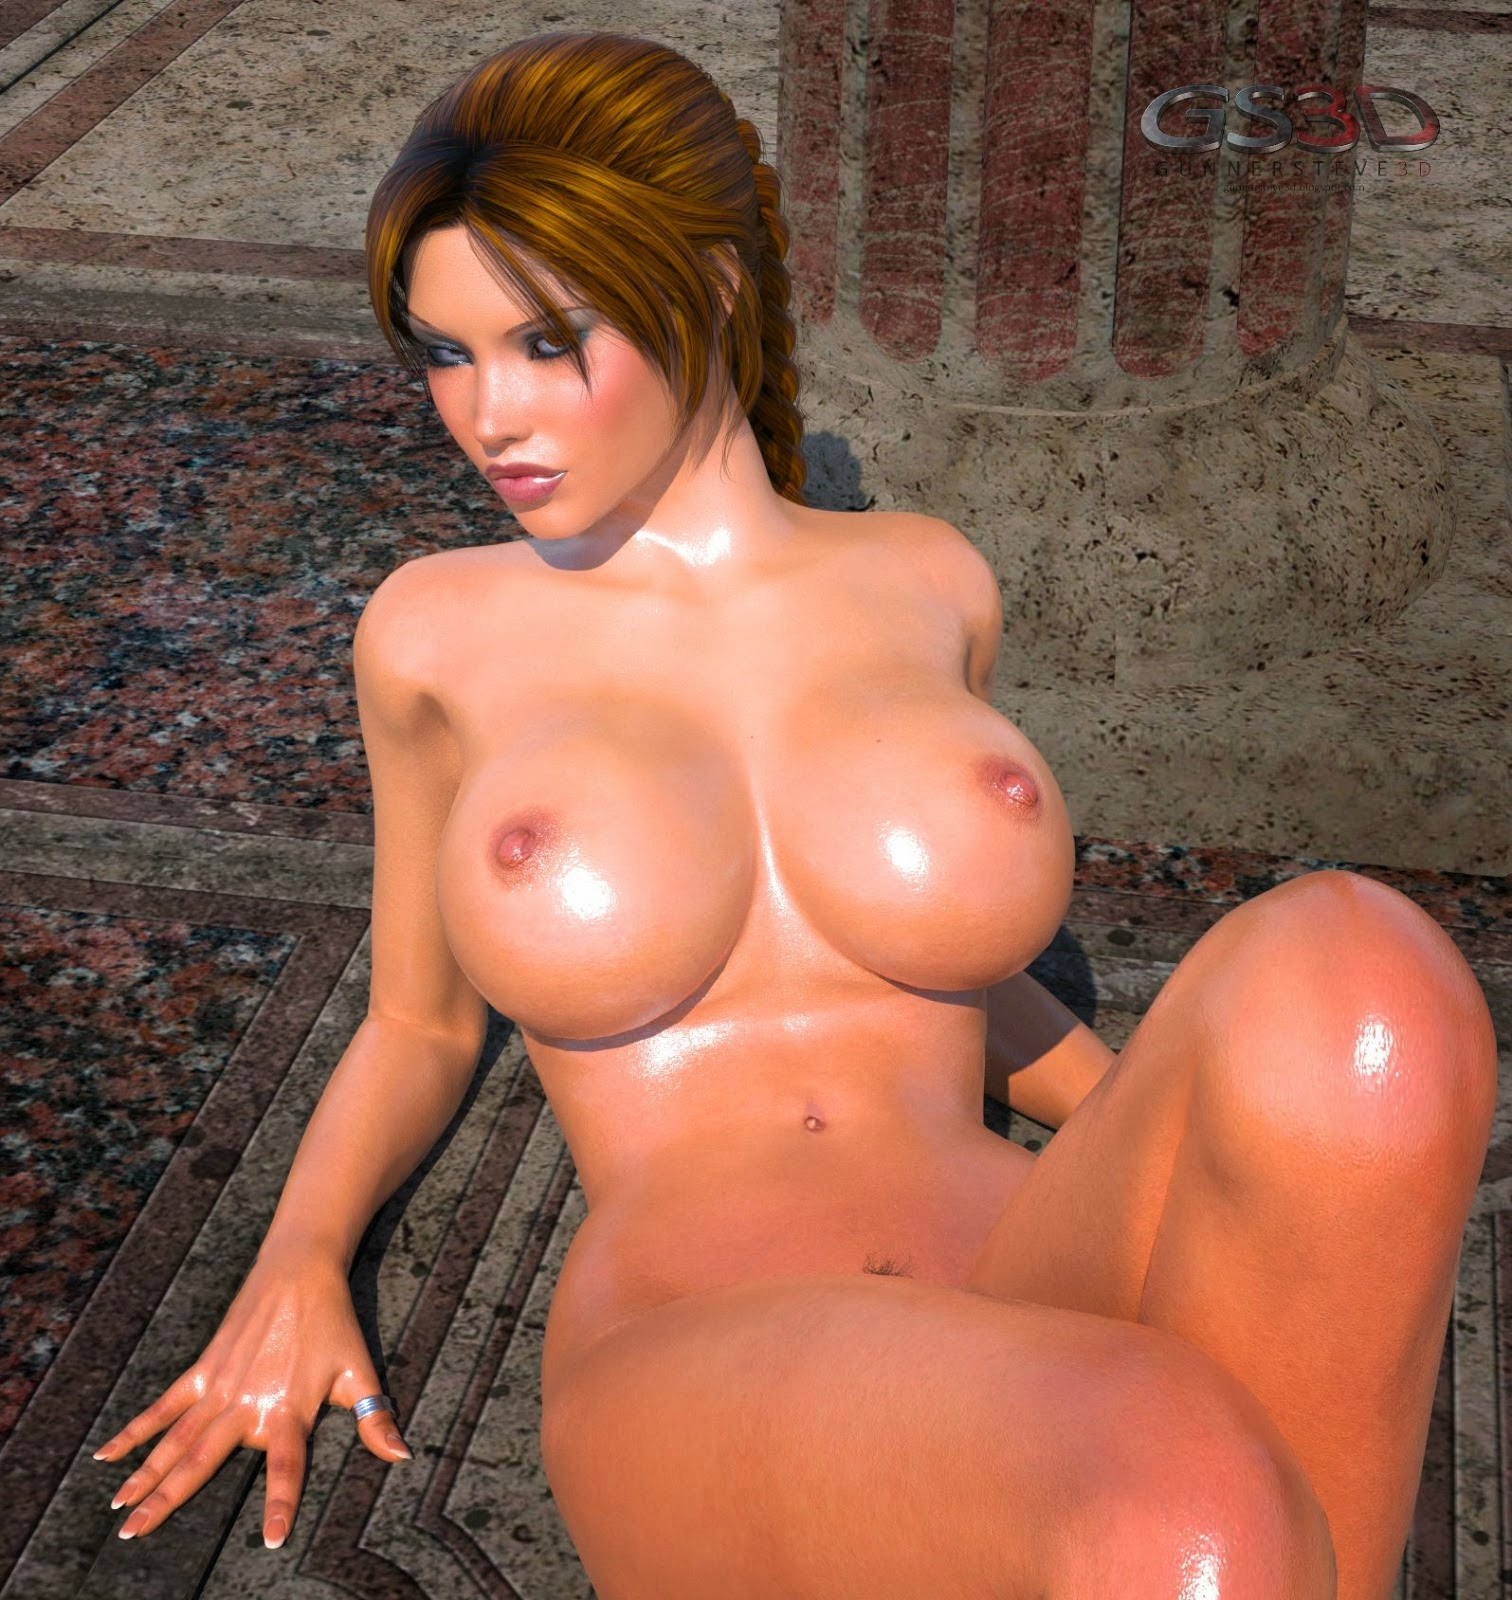 Lara rip nude for the high res  naked image